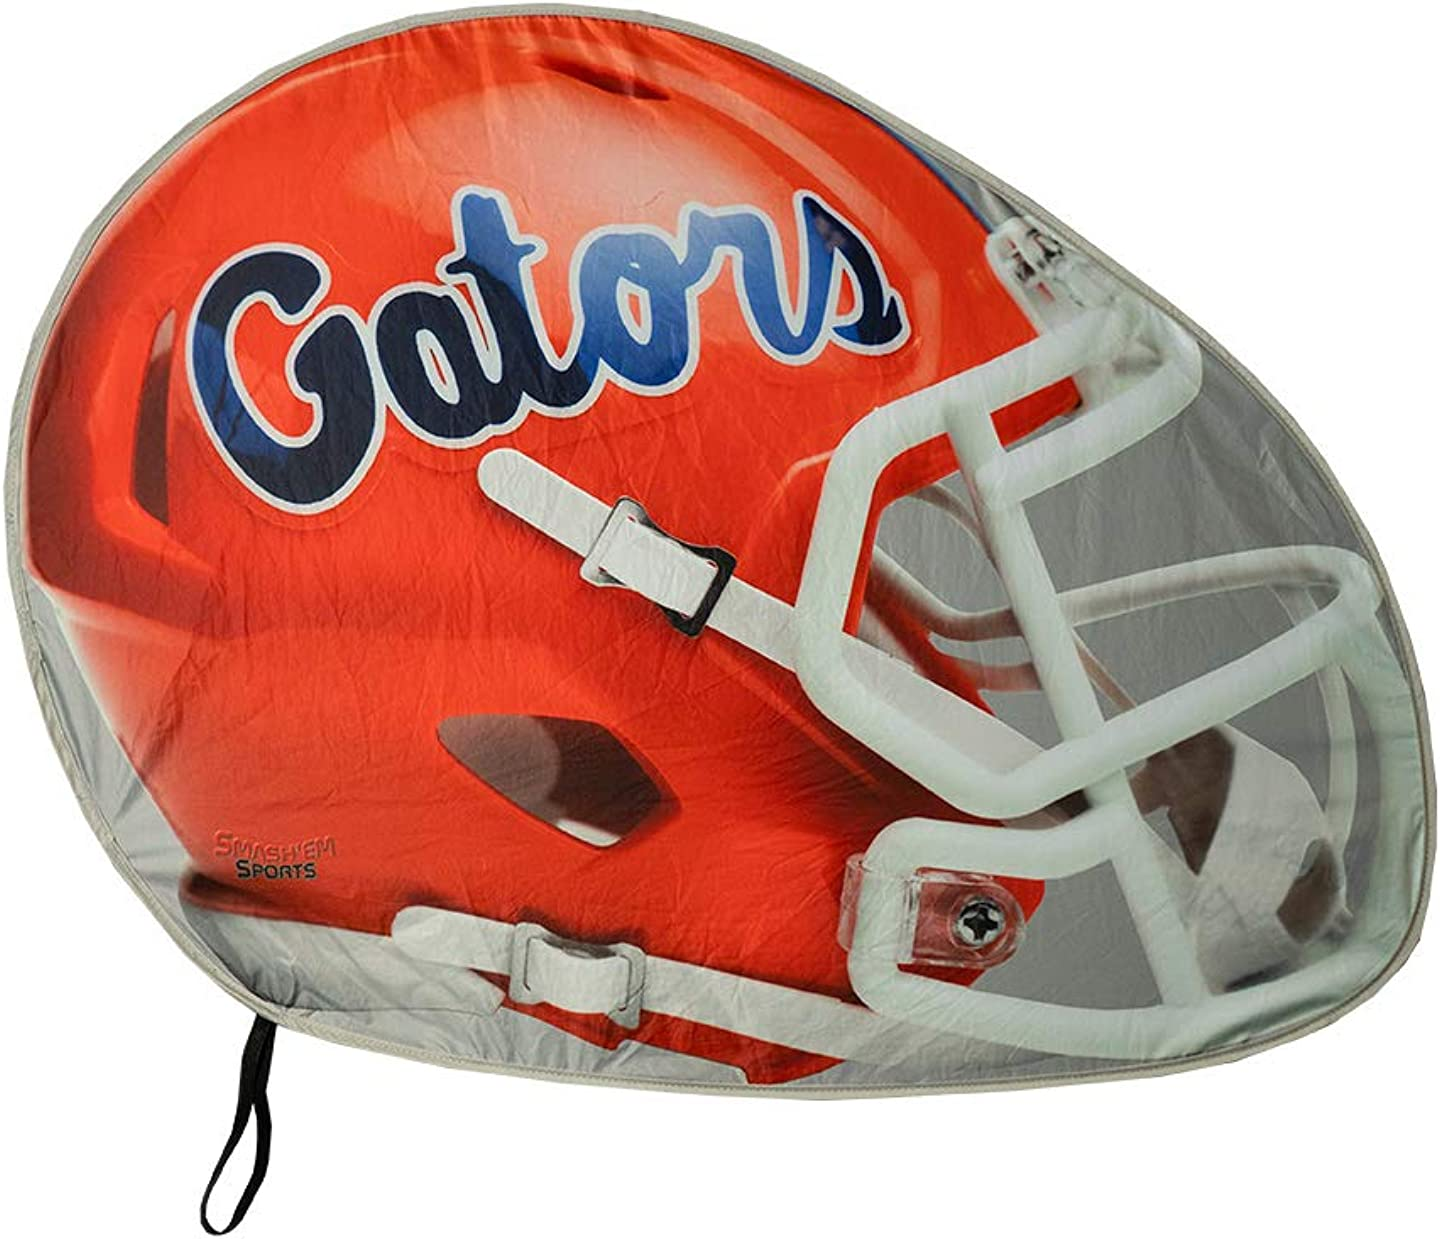 Gators University of Florida Auto Sunshade